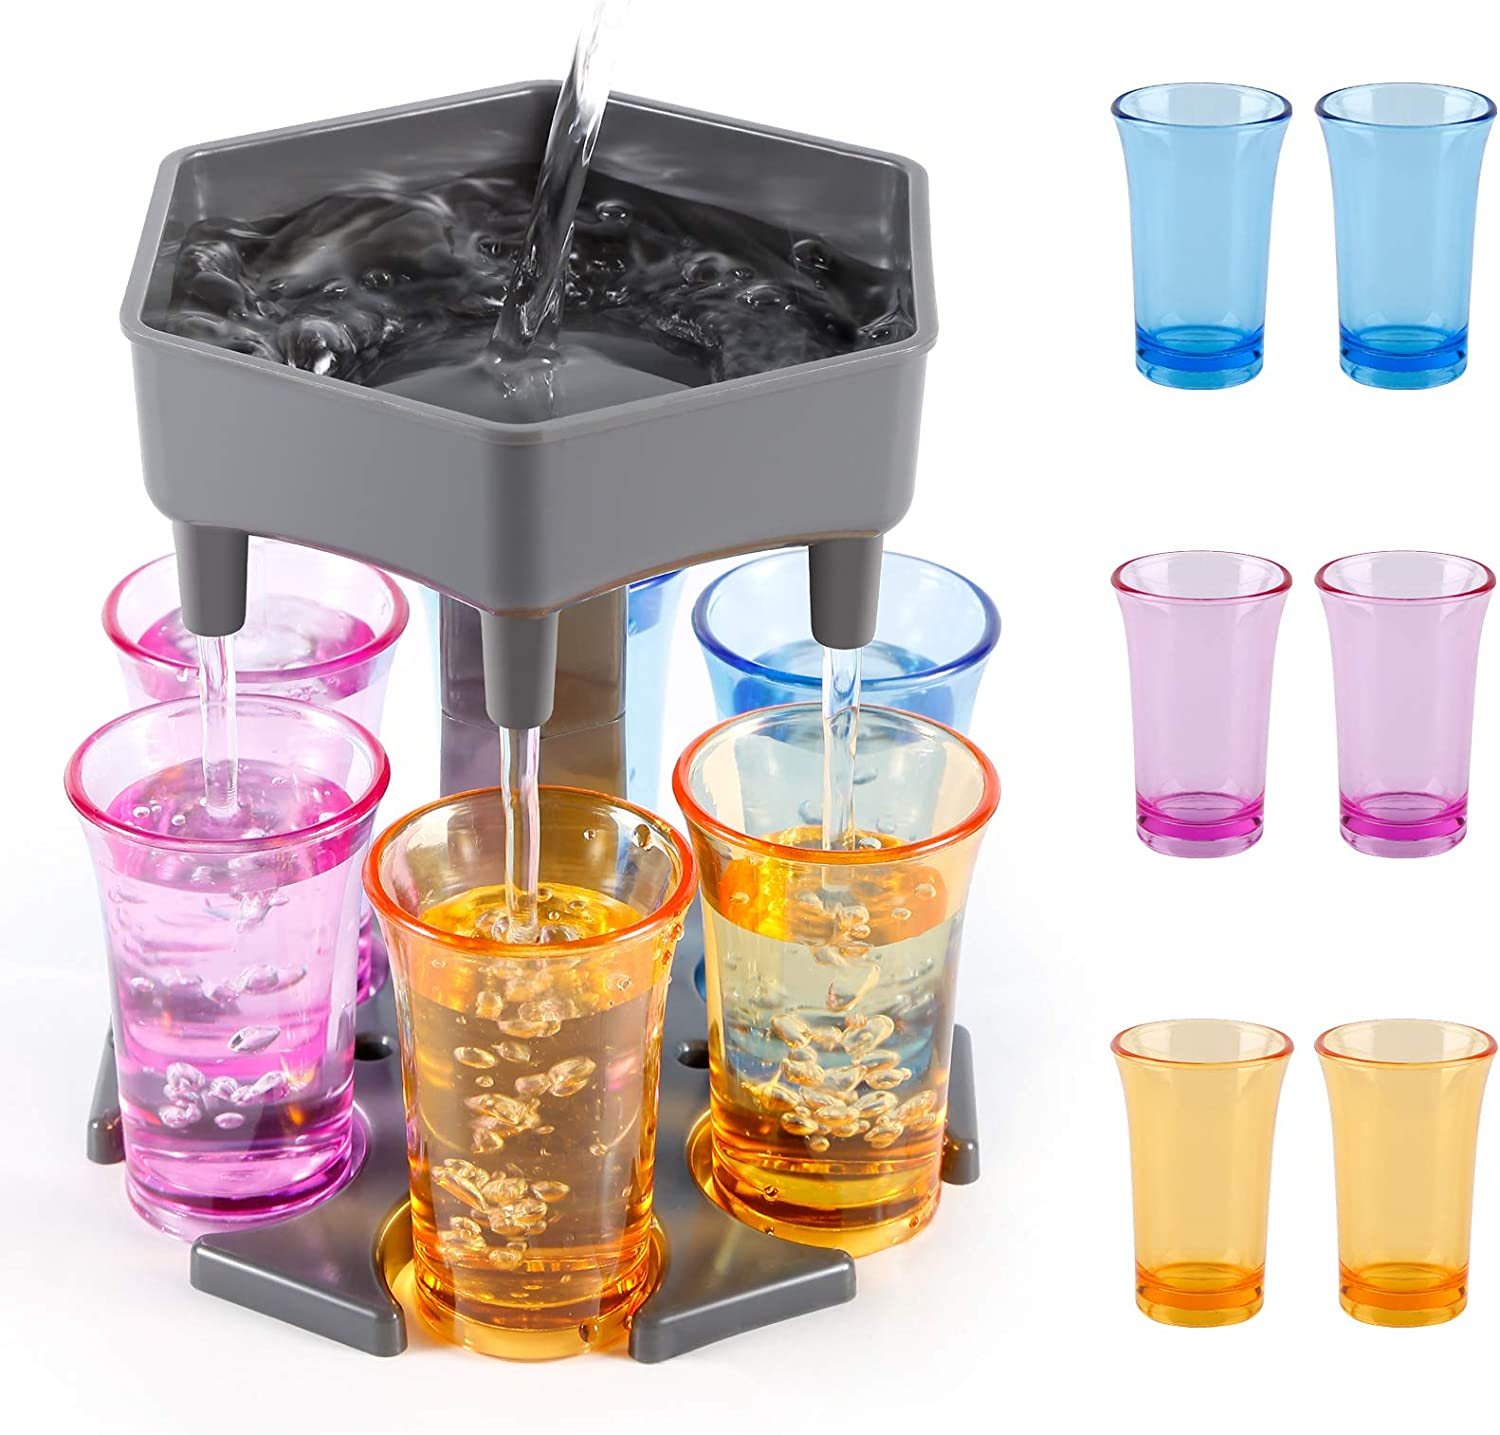 6 Shot Glass Dispenser, Drink Dispenser and Holder with Stoppers, Beverage Dispenser with Glasses for Filling Liquids Cocktail Liquor Carrier Gifts Bar Shot Dispenser for Parties (Gray with 6 glass)